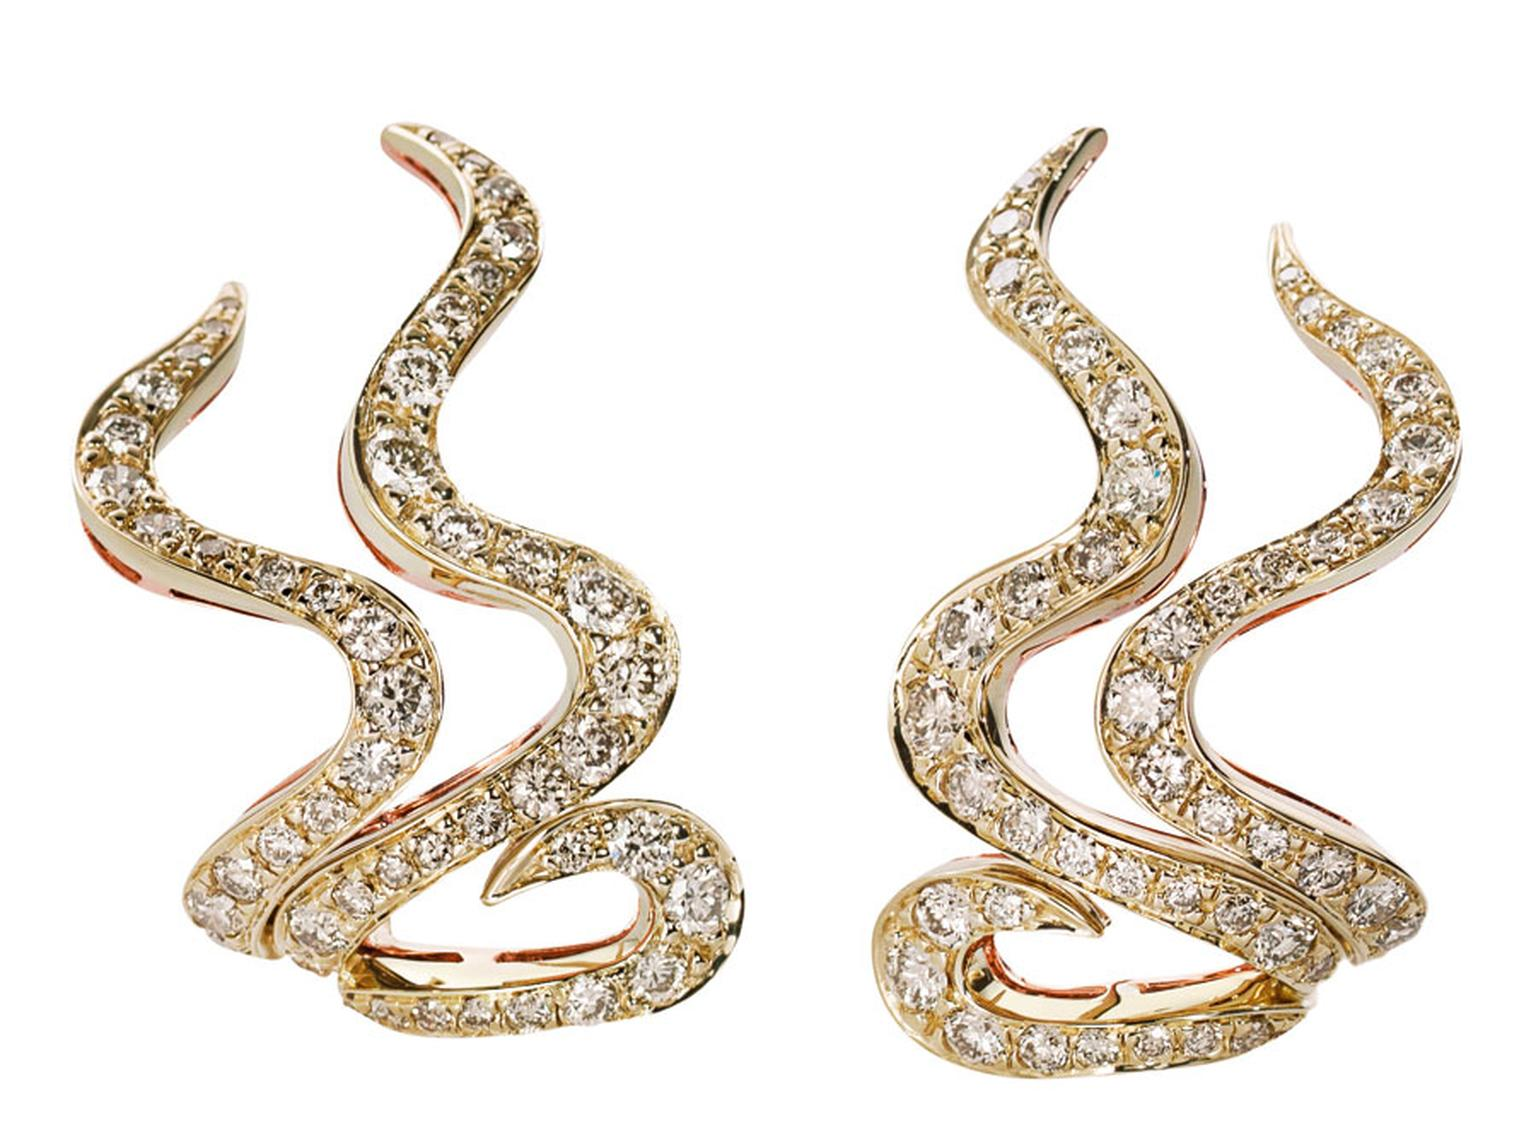 H-Stern-Earrings-in-yellow-and-rose-gold-with-diamonds